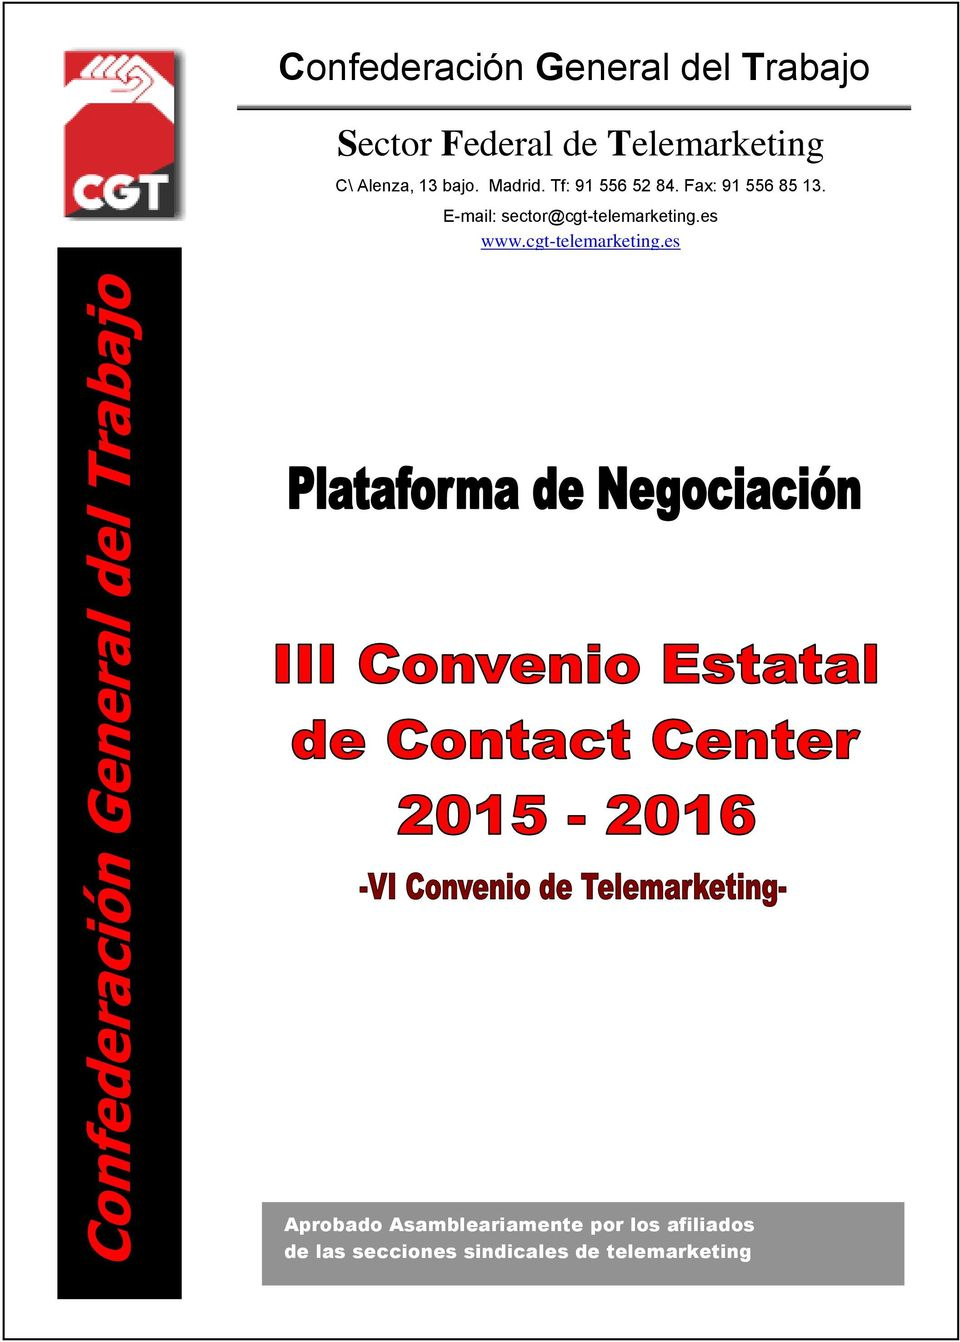 es www.cgt-telemarketing.